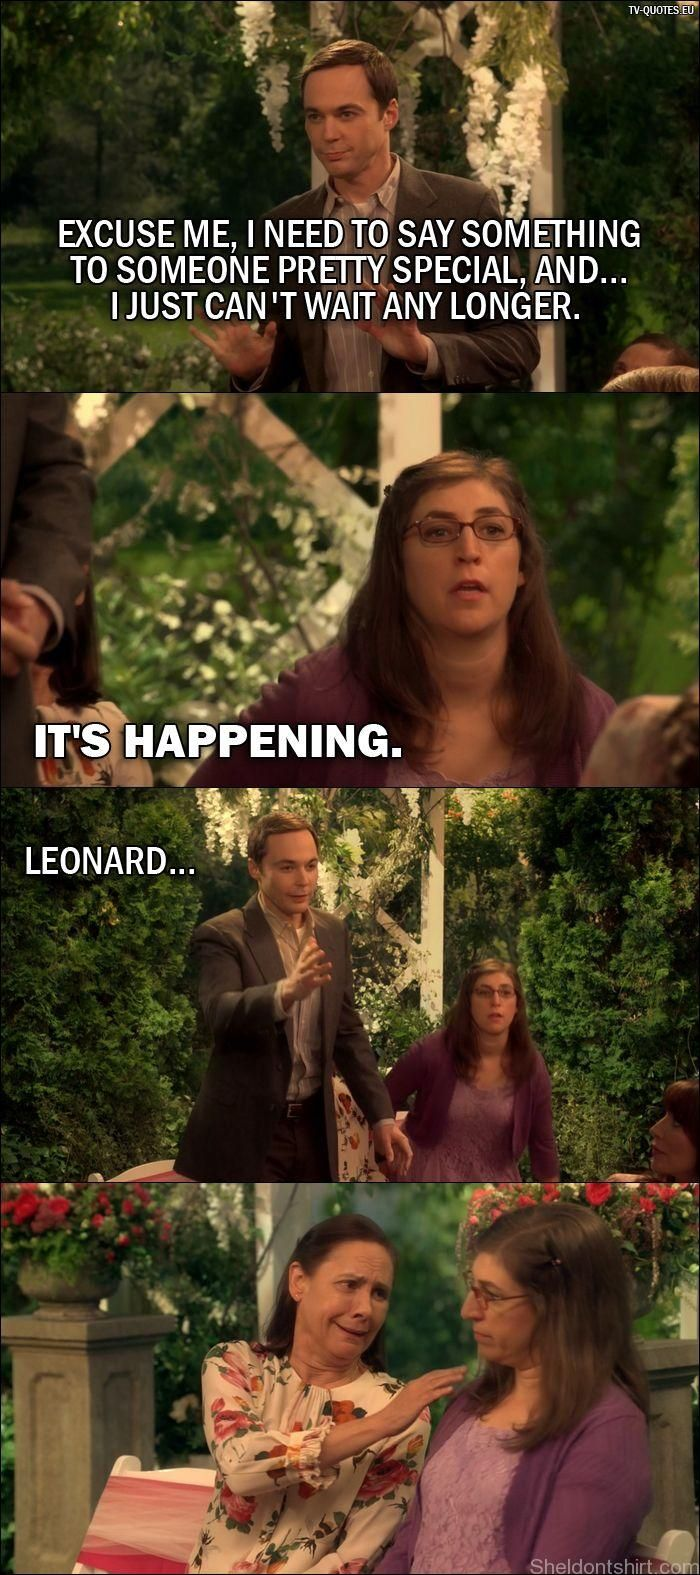 Quote from The Big Bang Theory 10x01: Sheldon Cooper: Excuse me, I need to say s... -   Quote from The Big Bang Theory 10×01: Sheldon Cooper: Excuse me, I need to say something to someone pretty special, and… I just can't wait any longer. Amy Farrah Fowler: It's happening. Sheldon Cooper: Leonard…   #TBBT